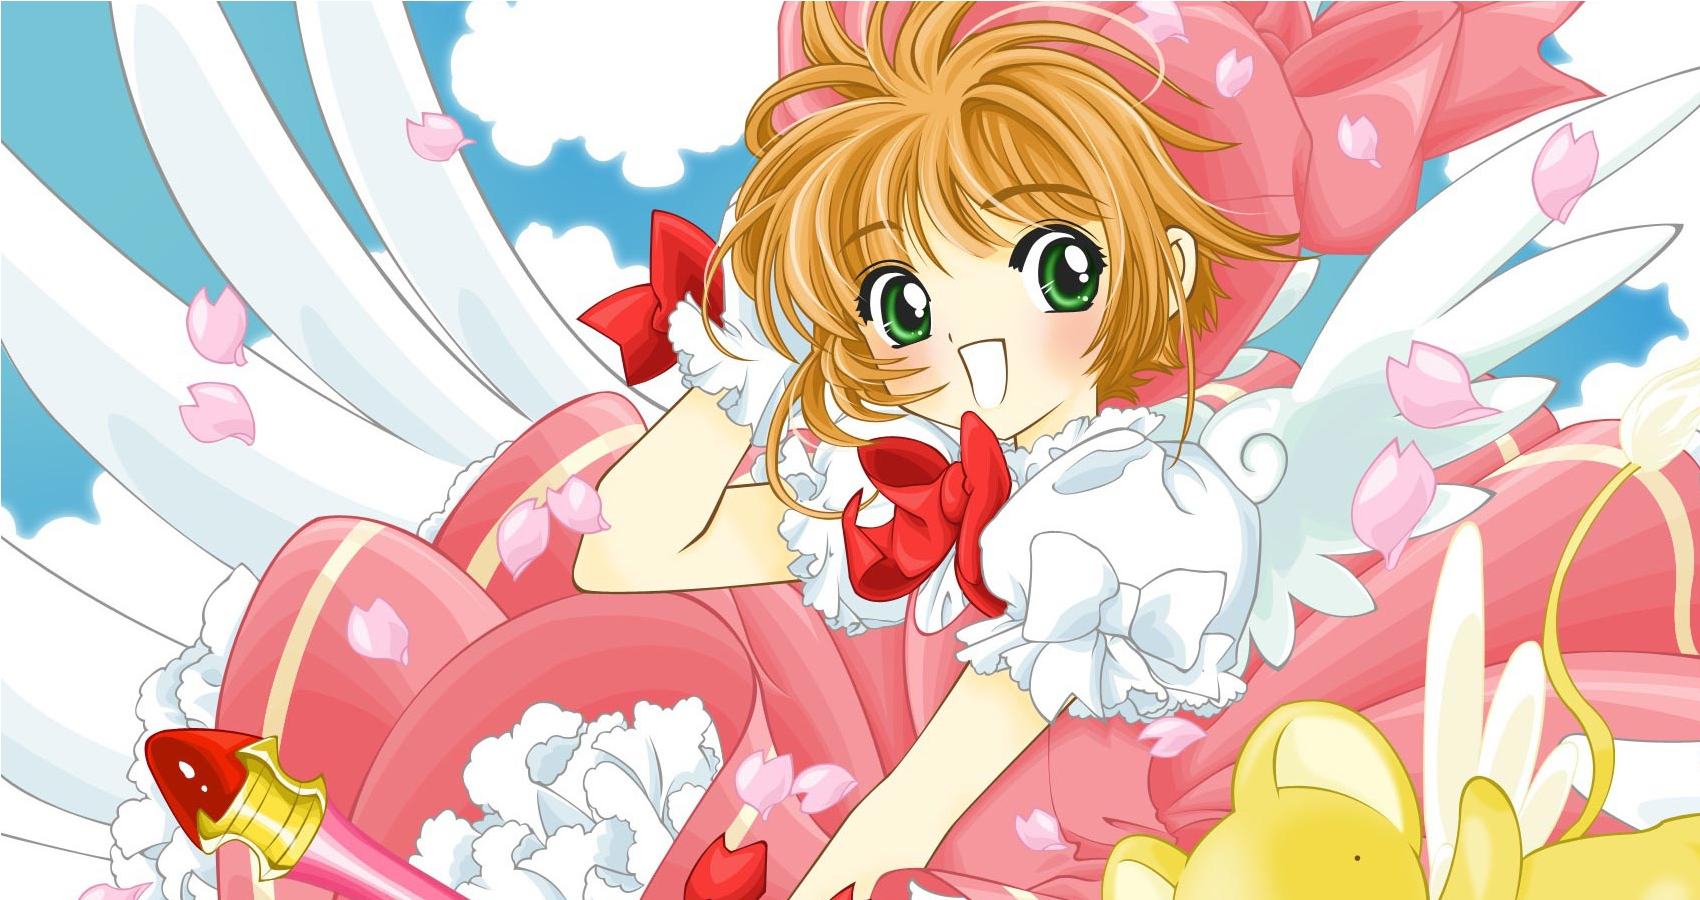 Cardcaptor Sakura: What Clow Card Would You Use Most Based On Your MBTI®?